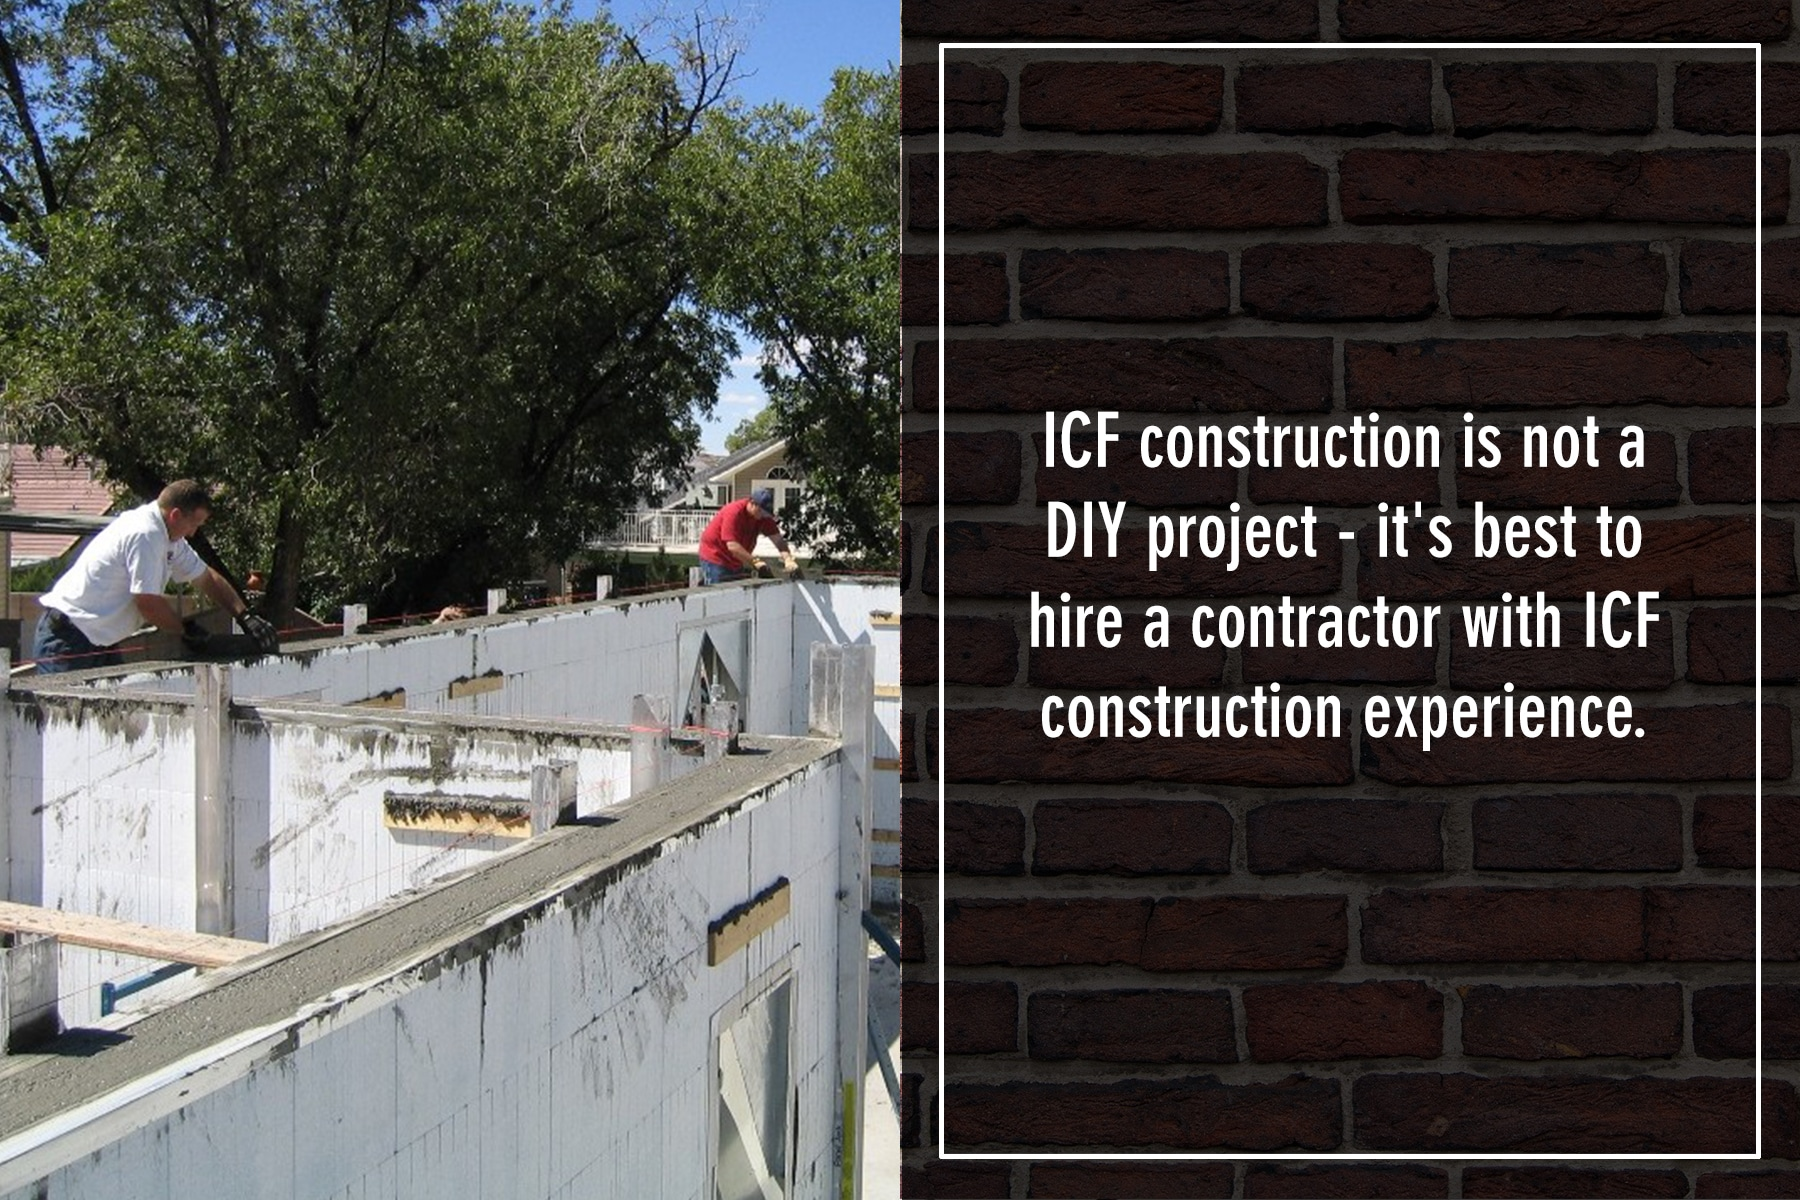 ICF construction is not a DIY project